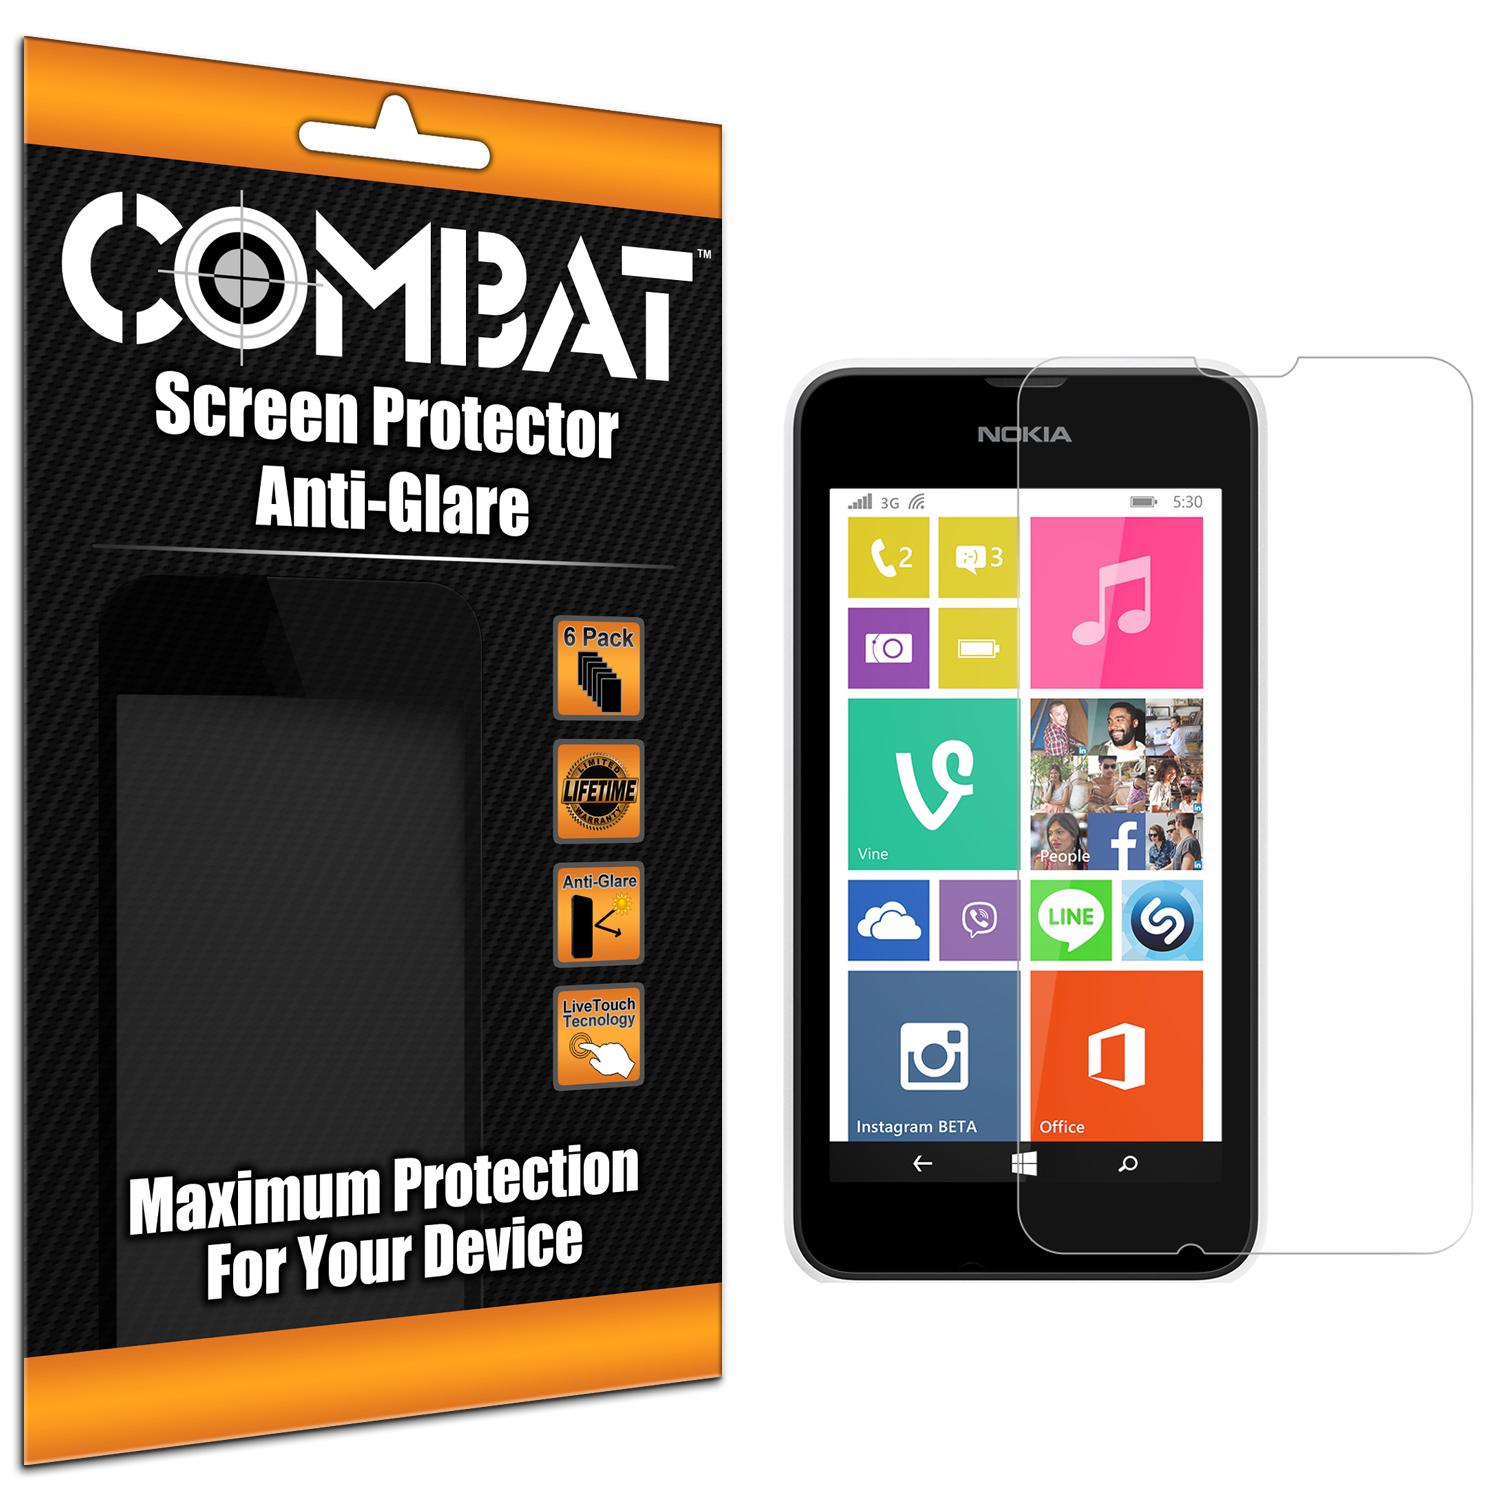 Nokia Lumia 530 Combat 6 Pack Anti-Glare Matte Screen Protector